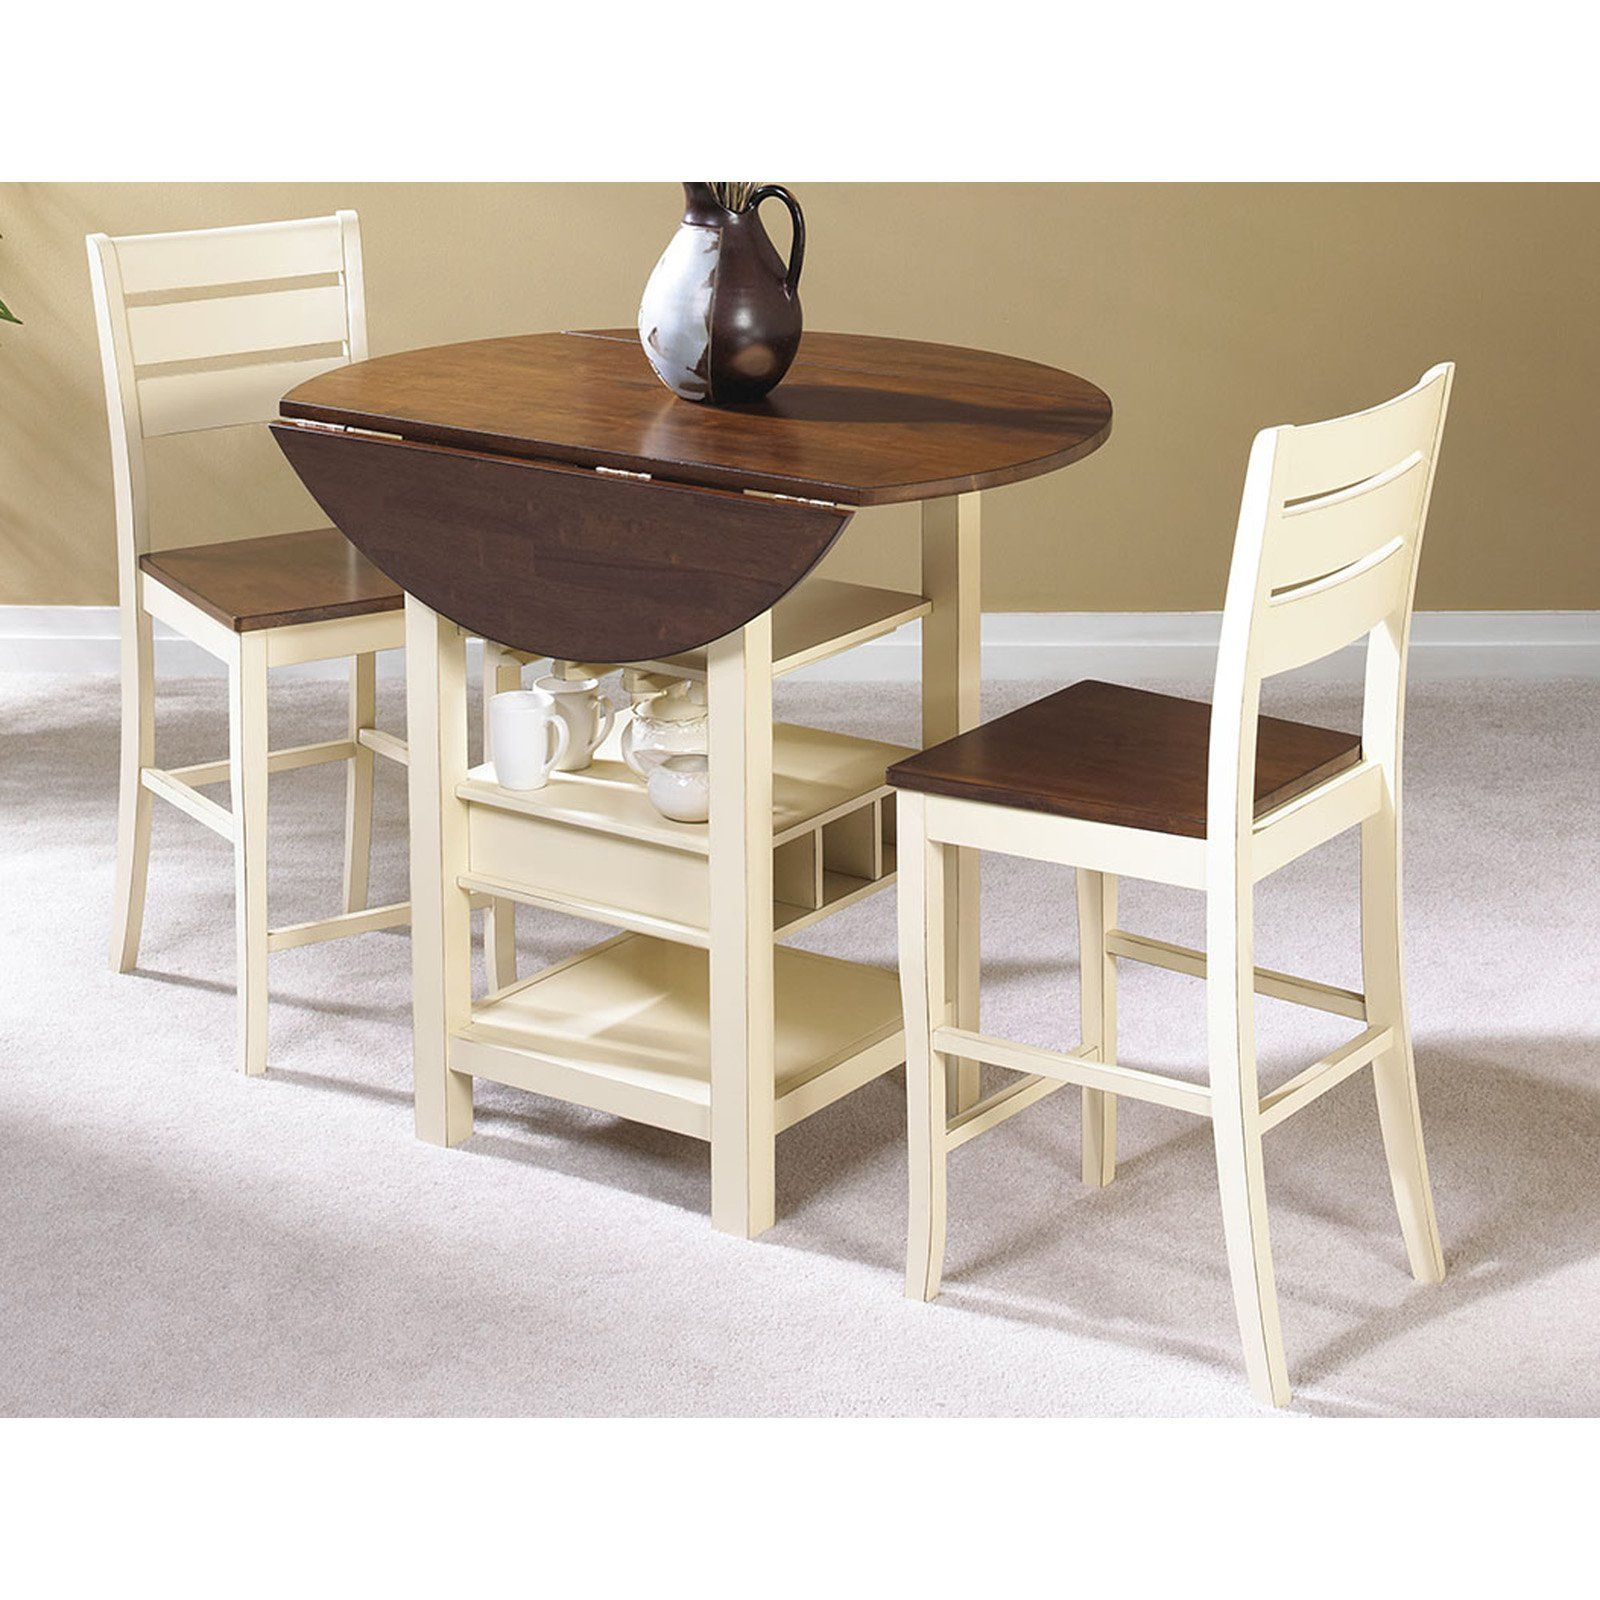 Sunset Trading Cascade 3 Piece Cream & Espresso Pub Table Set